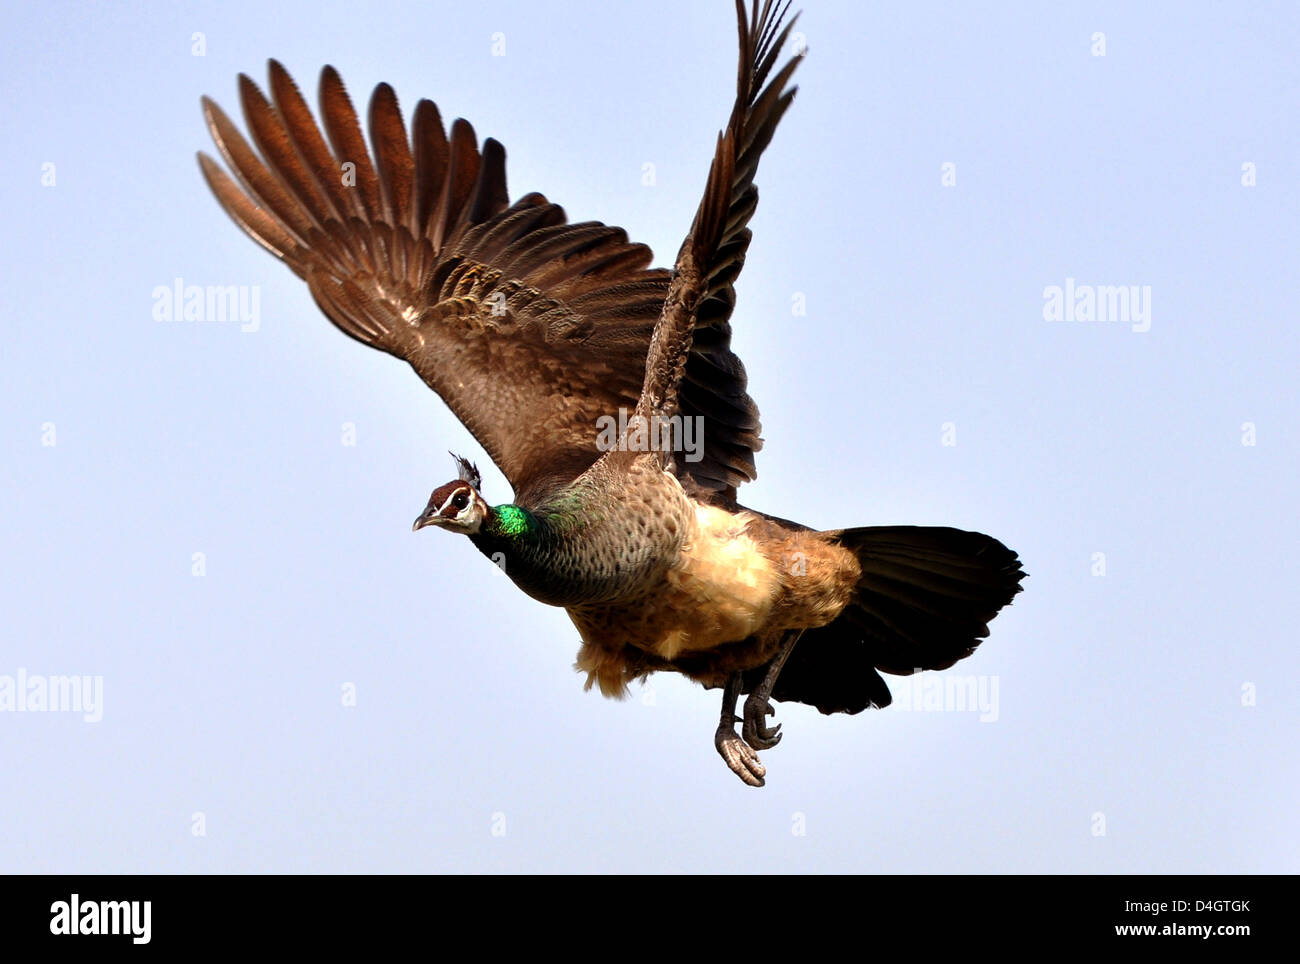 A Peahen, female peacock,or Indian peafowl (Pavo cristatus) at flight in Mathura, India. Stock Photo